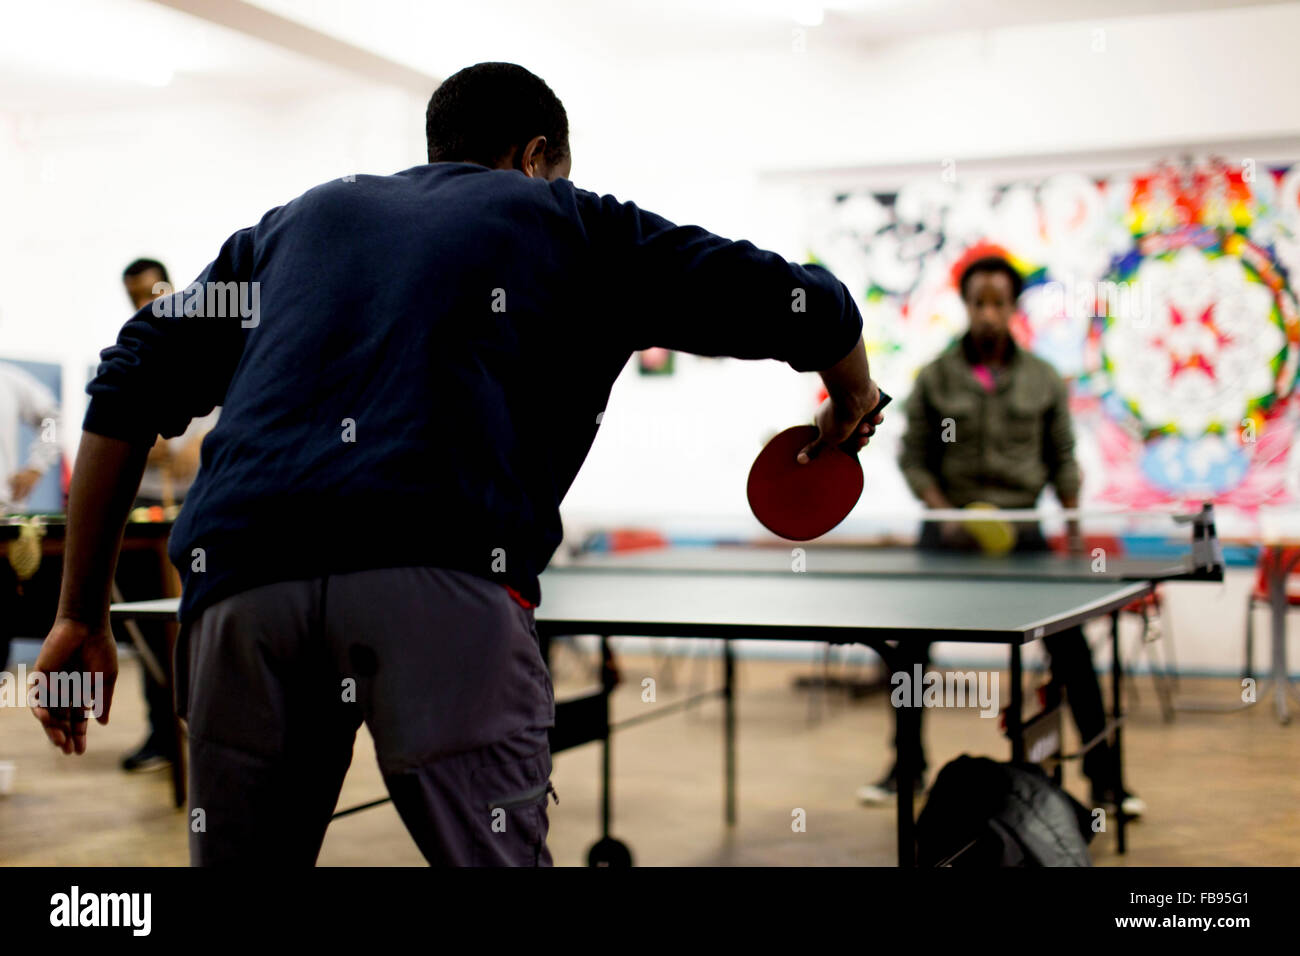 unidentifiable young men play table tennis  at a UK community centre - Stock Image